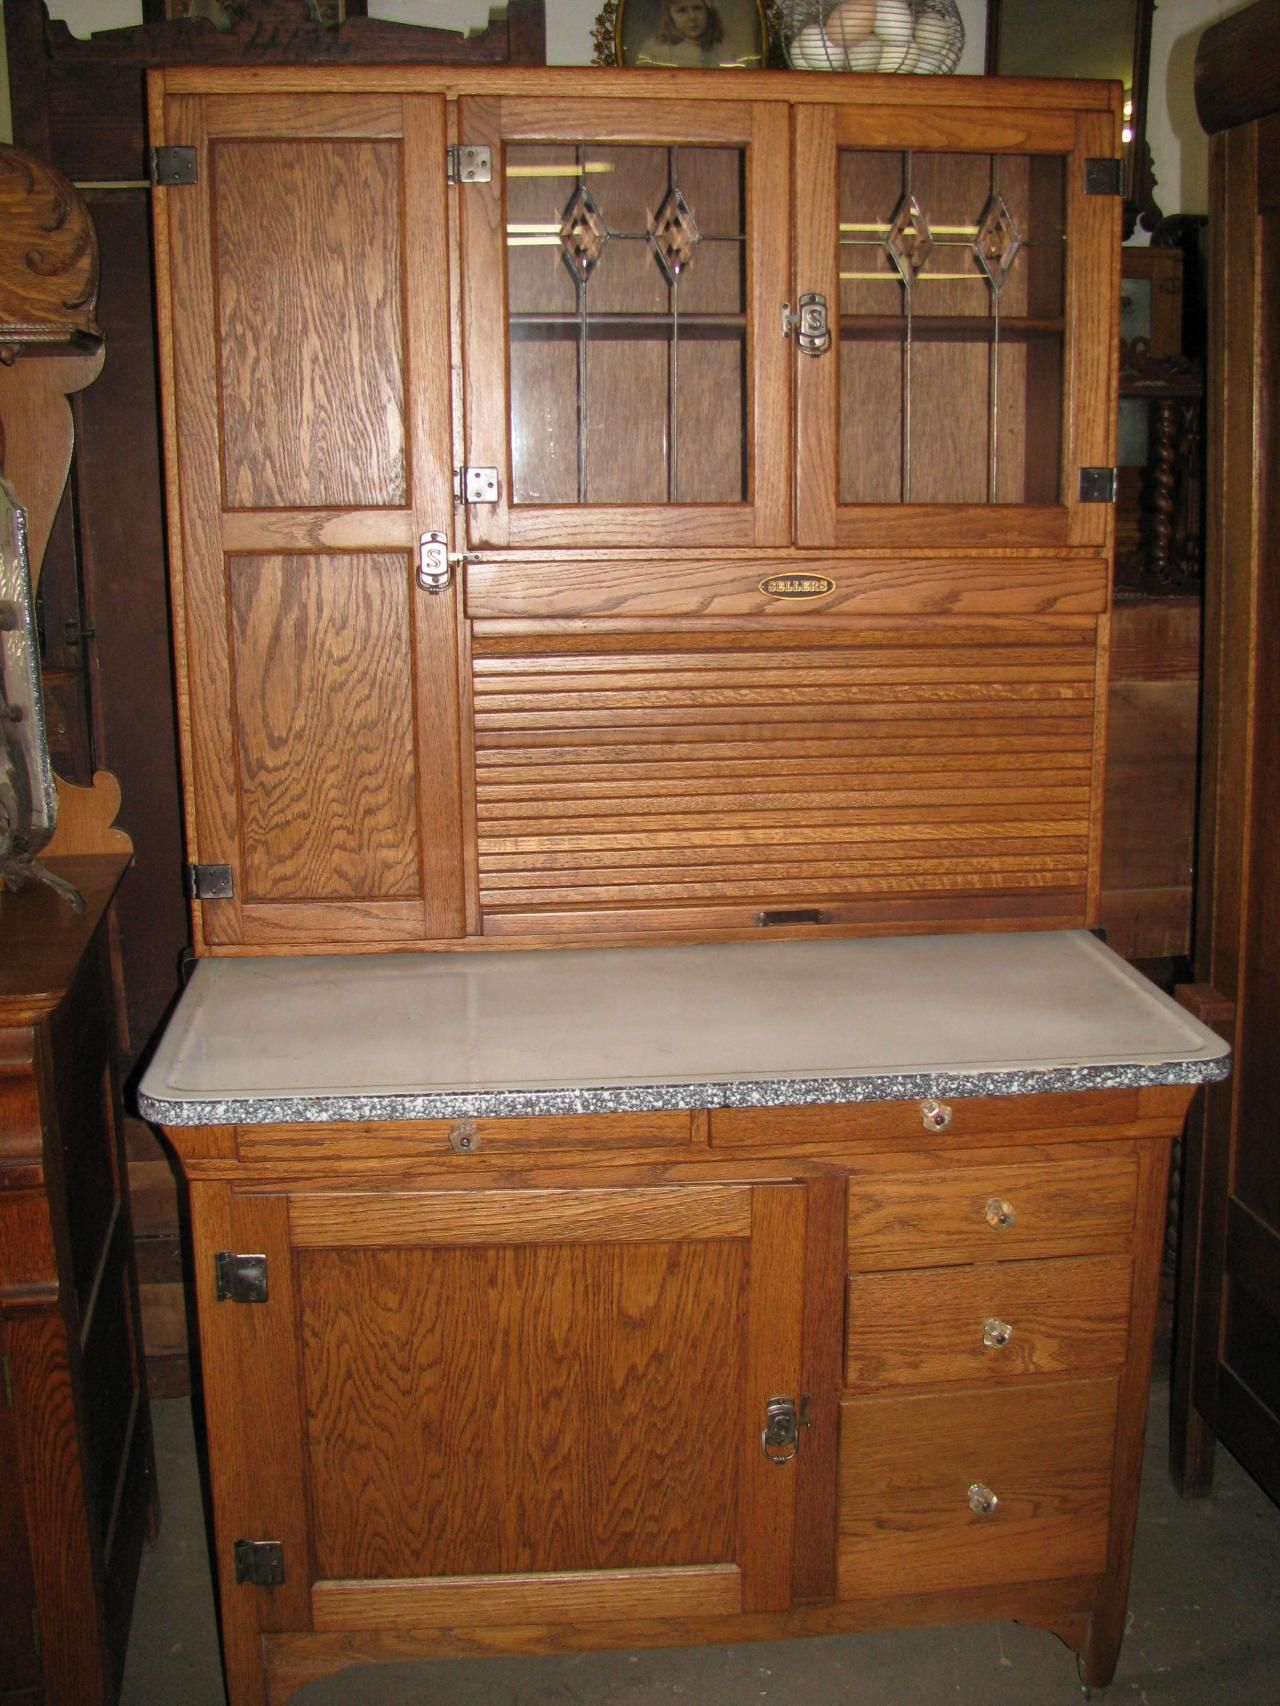 Sellers Kitchen/Bakers Cabinet Circa 1917-1920 w/ leaded glass windows w/ - Sellers Kitchen/Bakers Cabinet Circa 1917-1920 W/ Leaded Glass